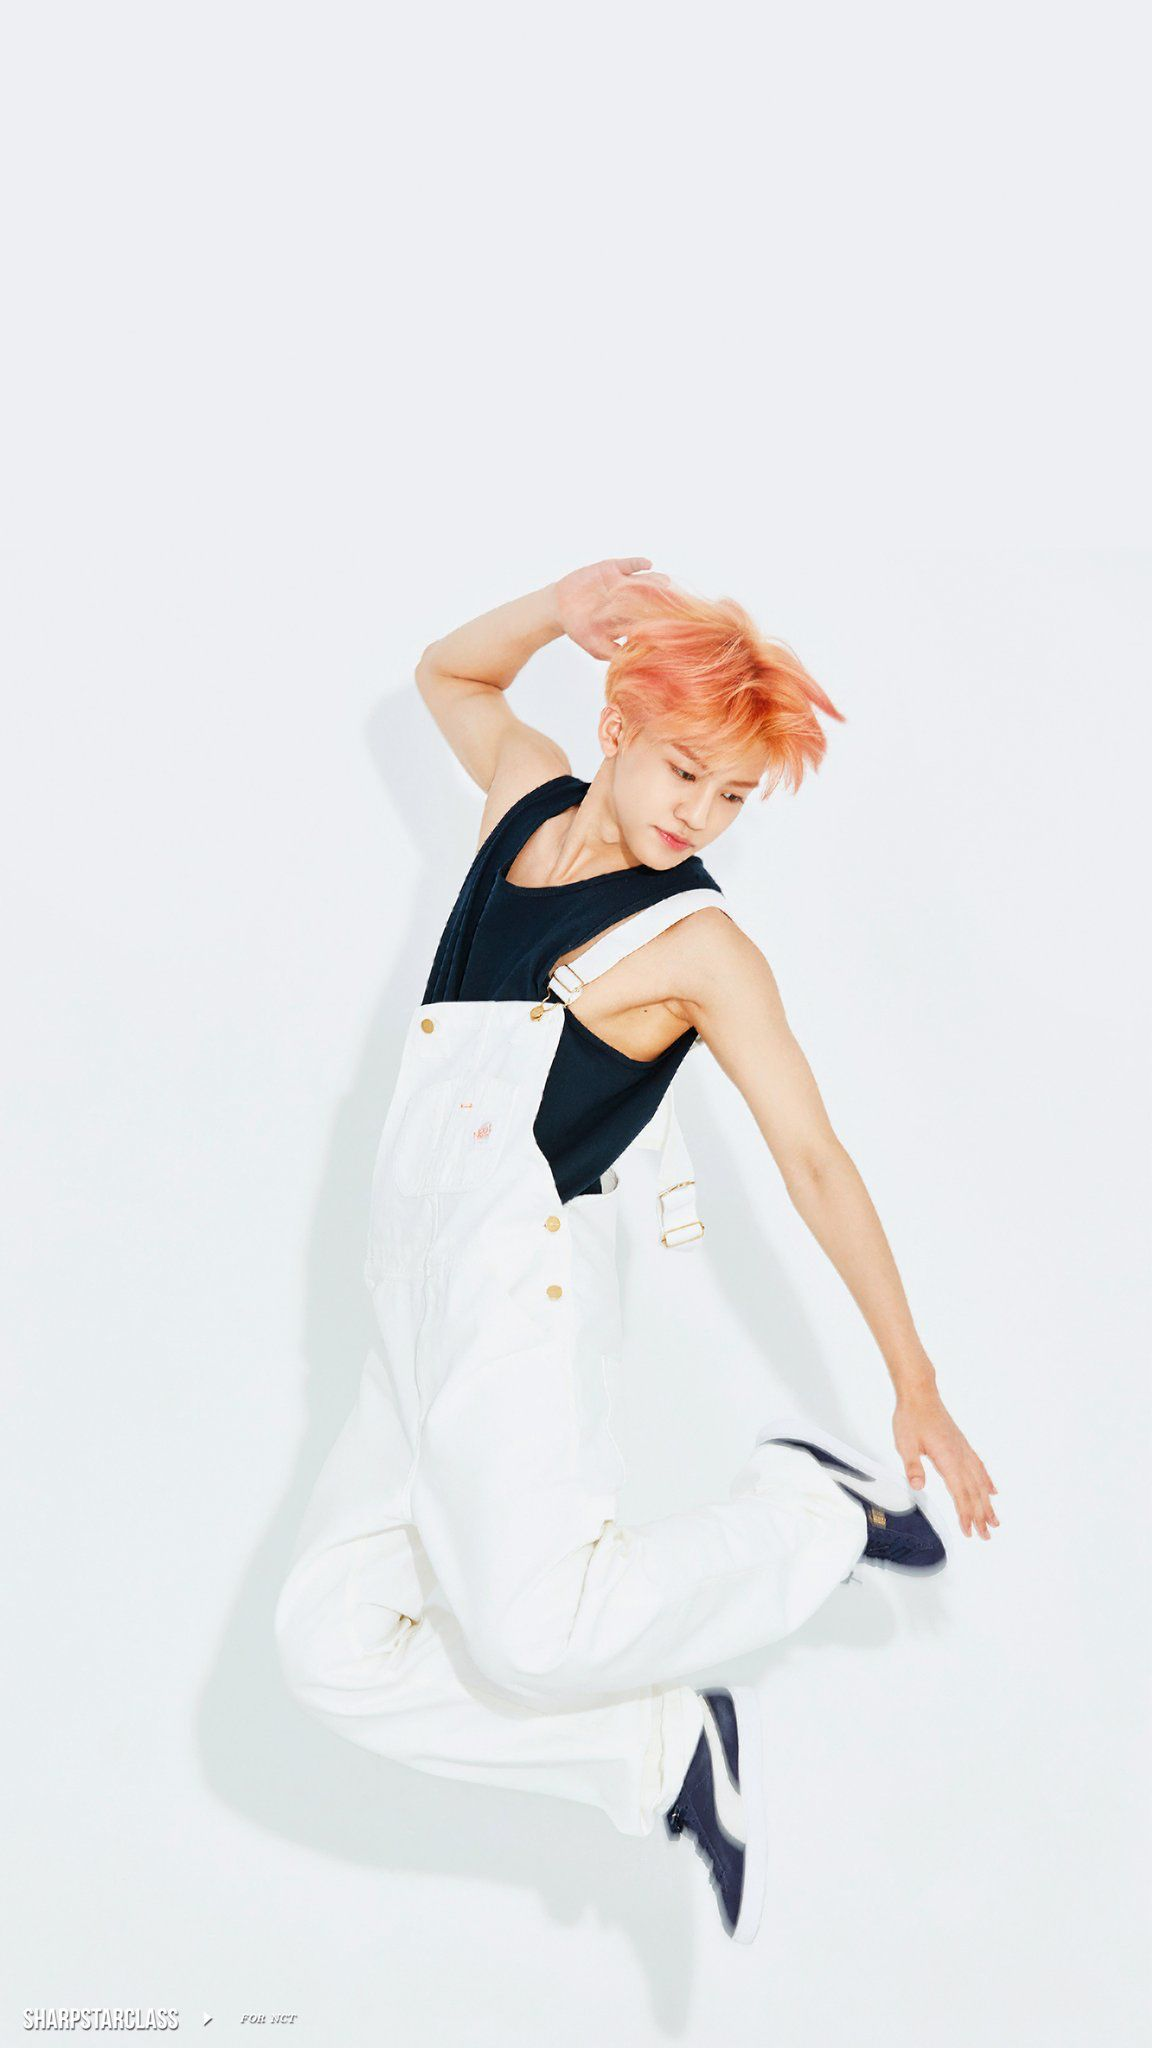 We Go Up Scans Jaemin Nct Nct Nct 127 Jisung Nct